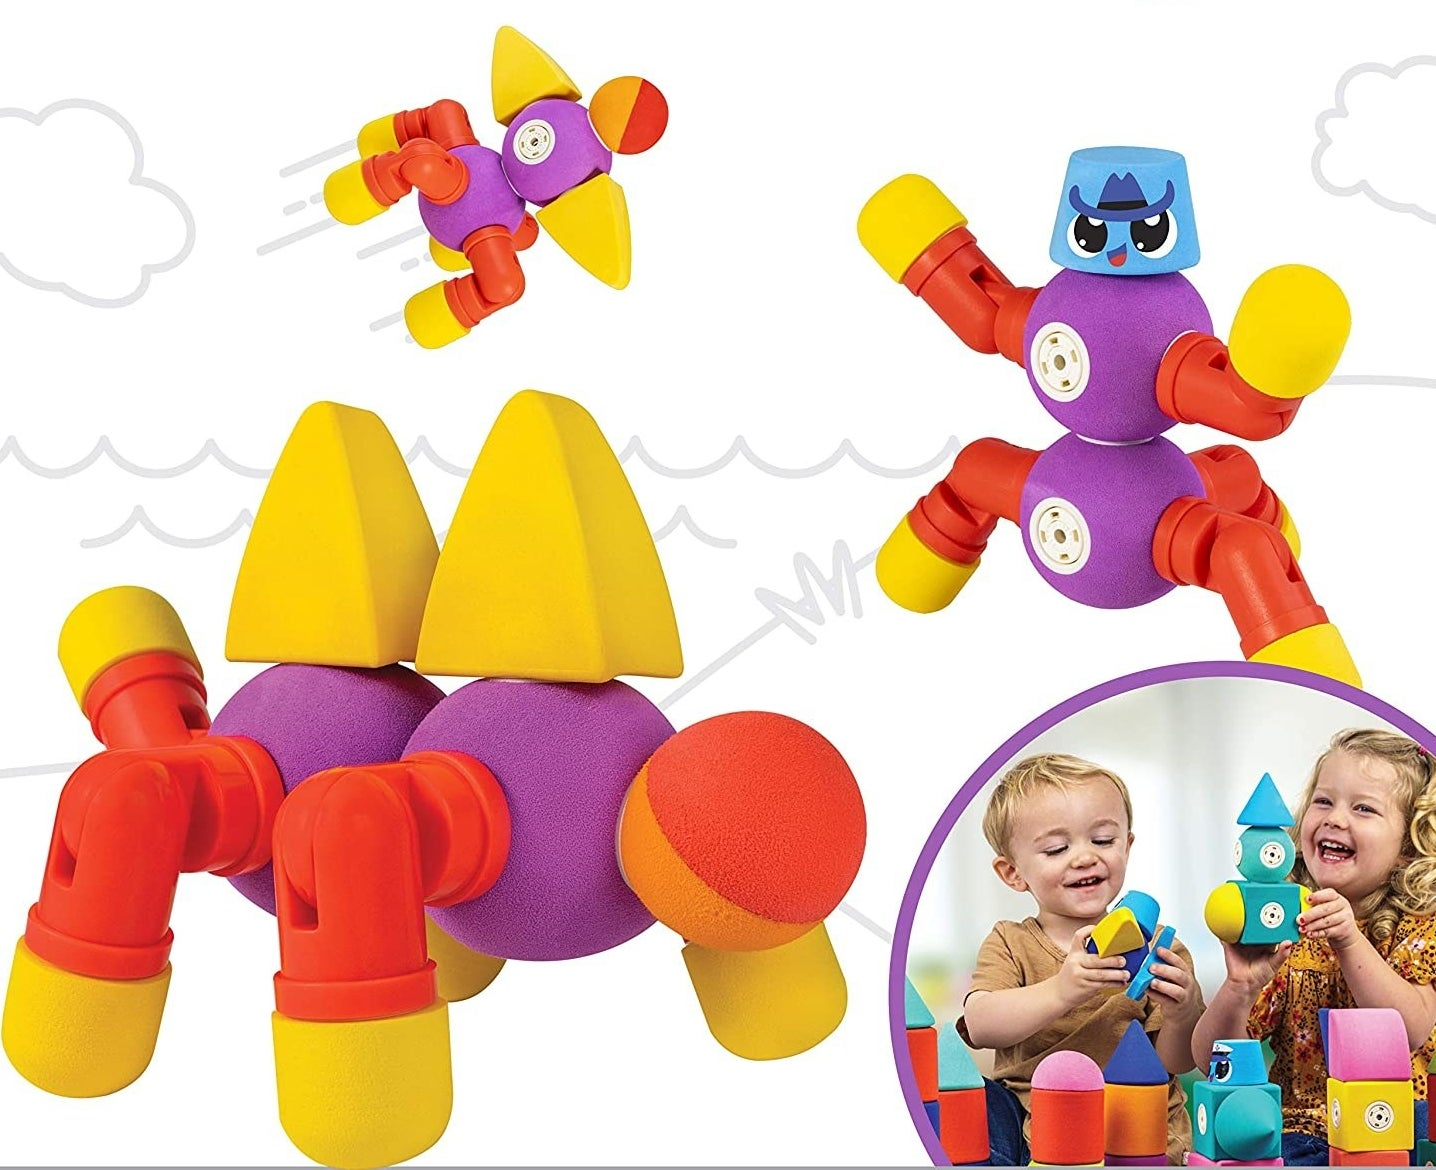 Purple, red, and yellow Blockaroo toys turned into different creatures and vehicles